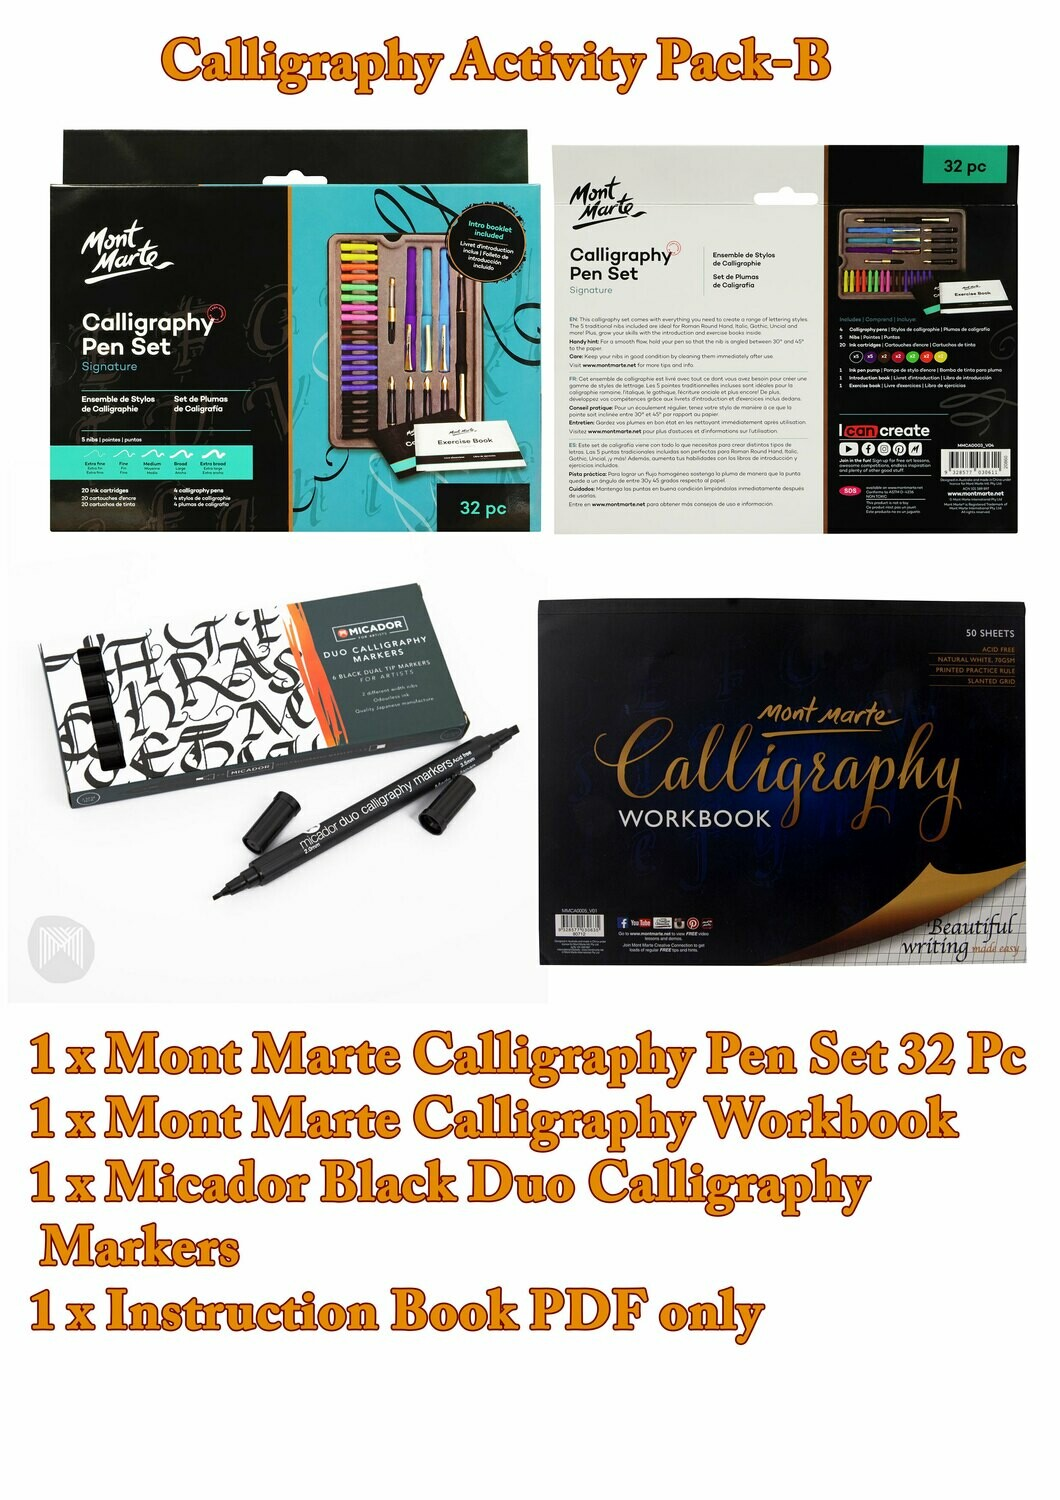 Calligraphy Activity Pack - B( PDF Instruction Book )